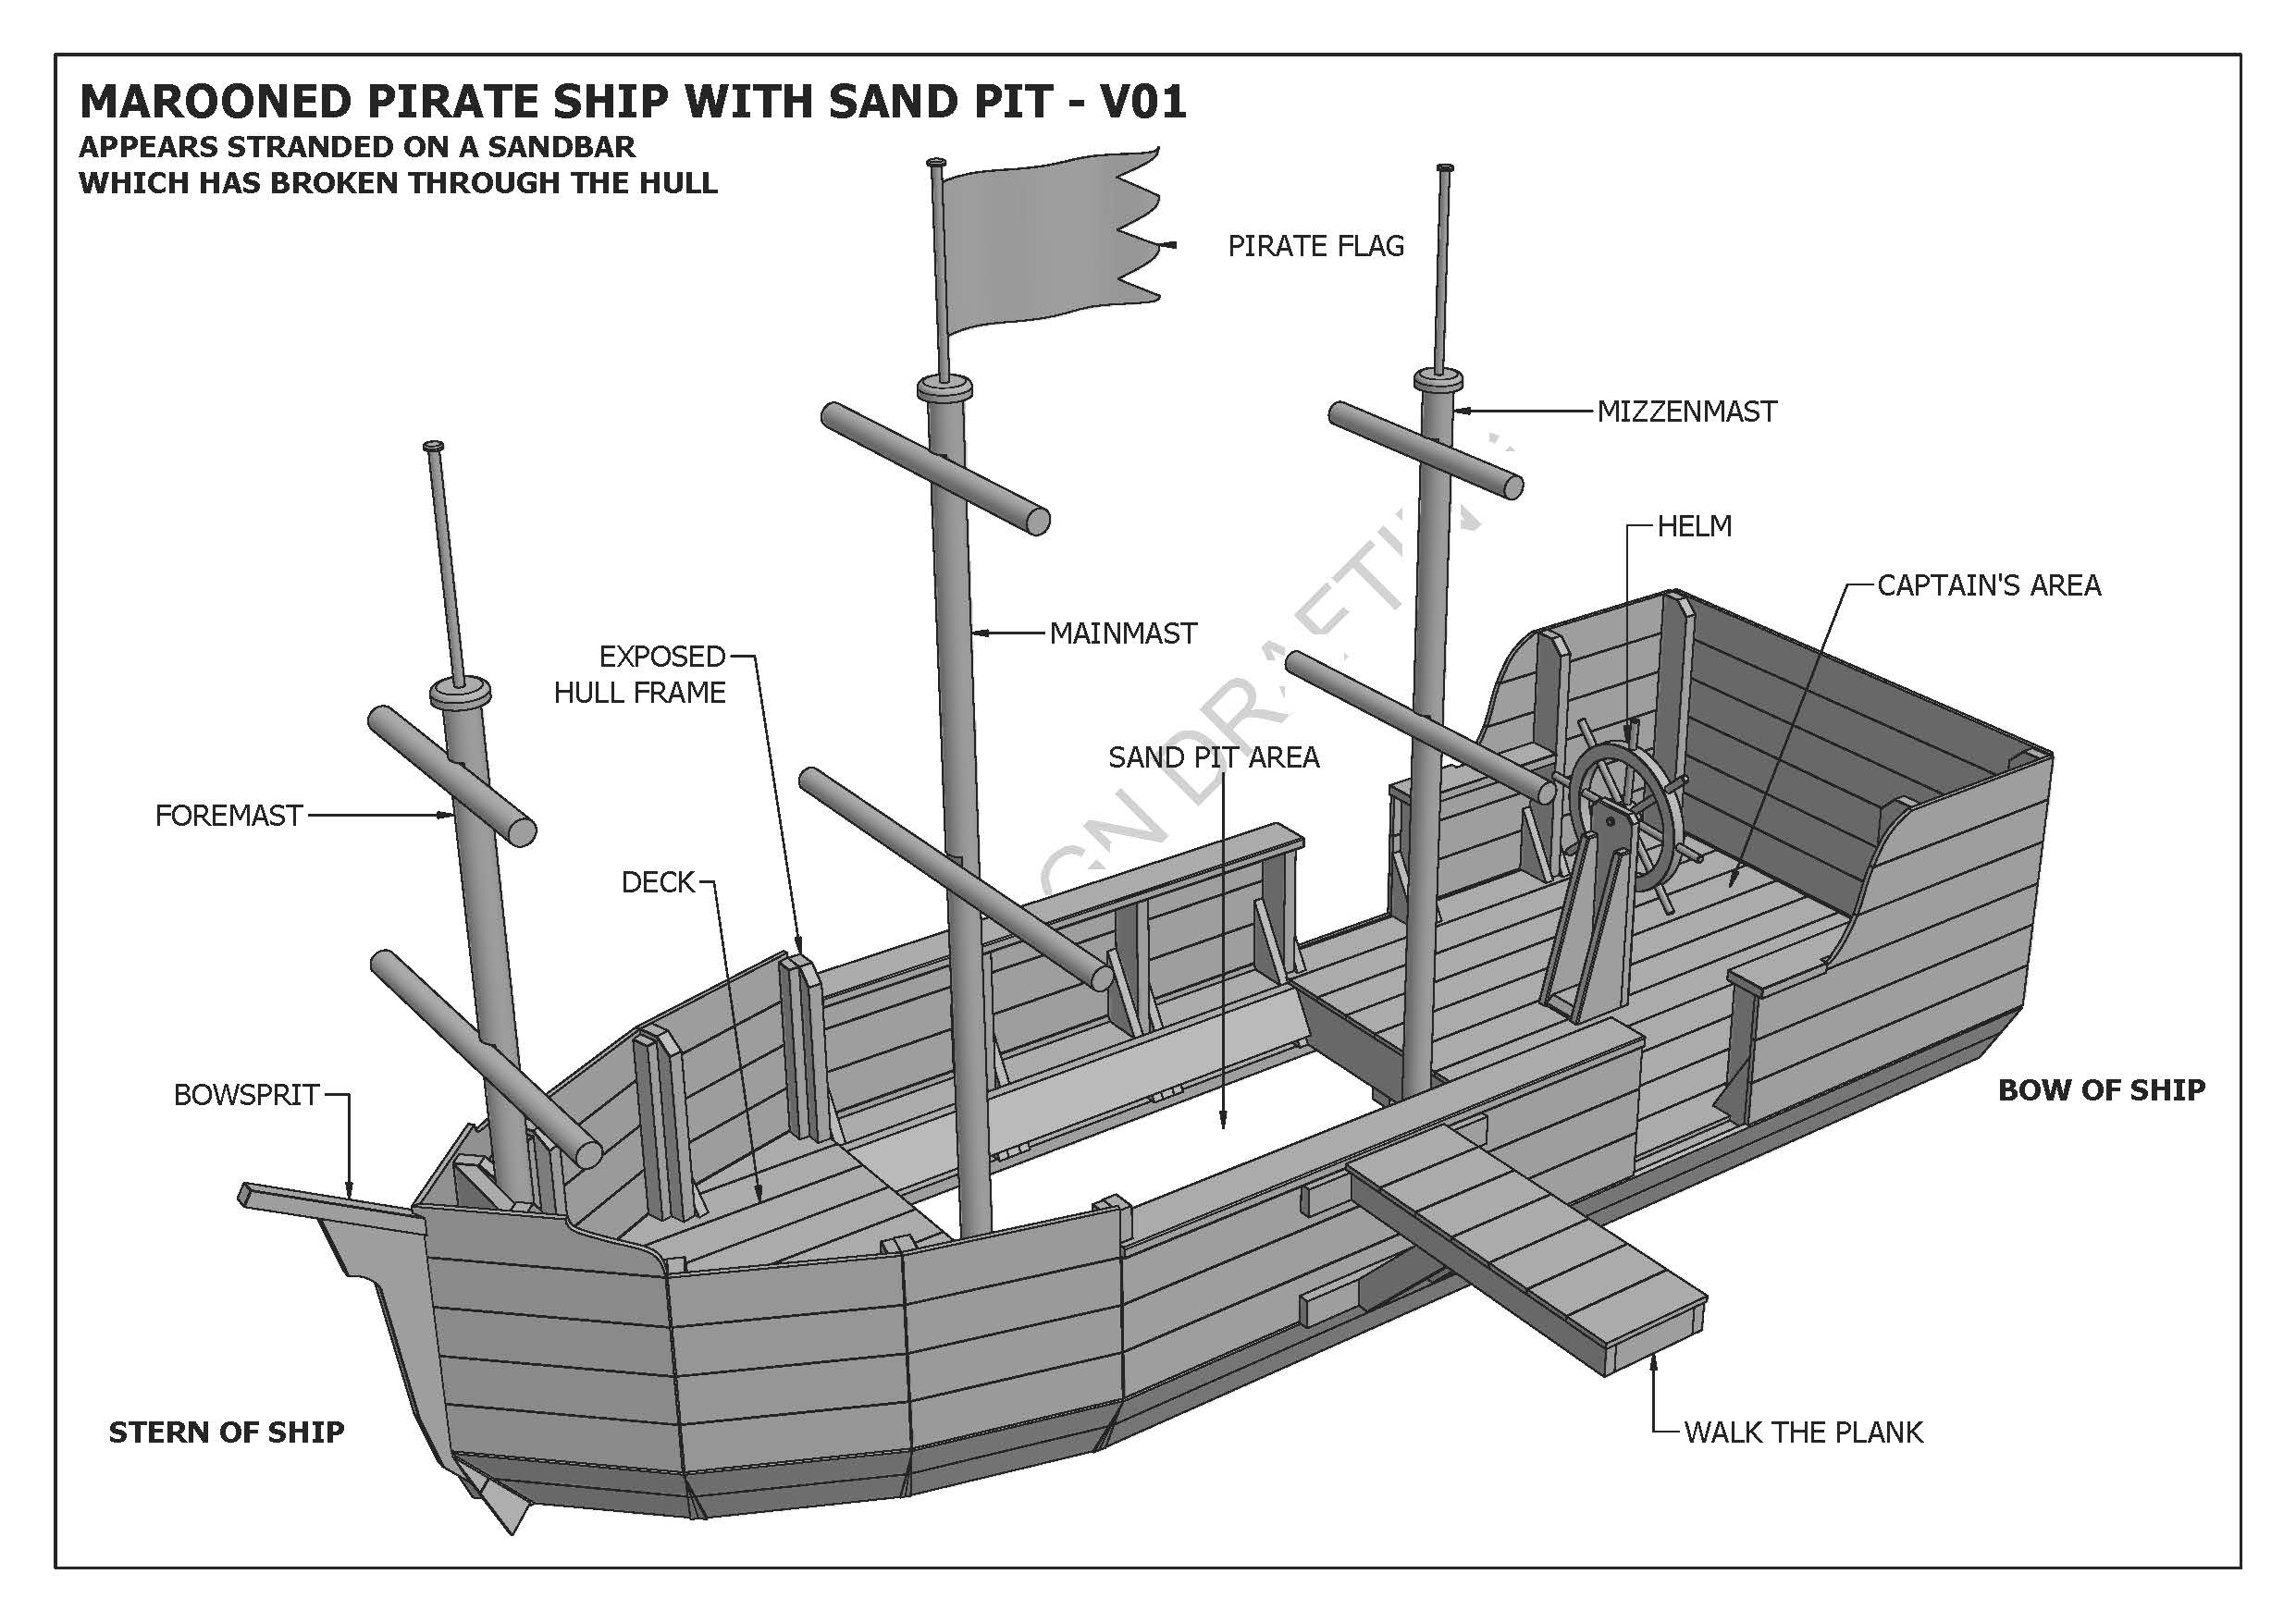 Marooned Pirate Boat With Sand Pit